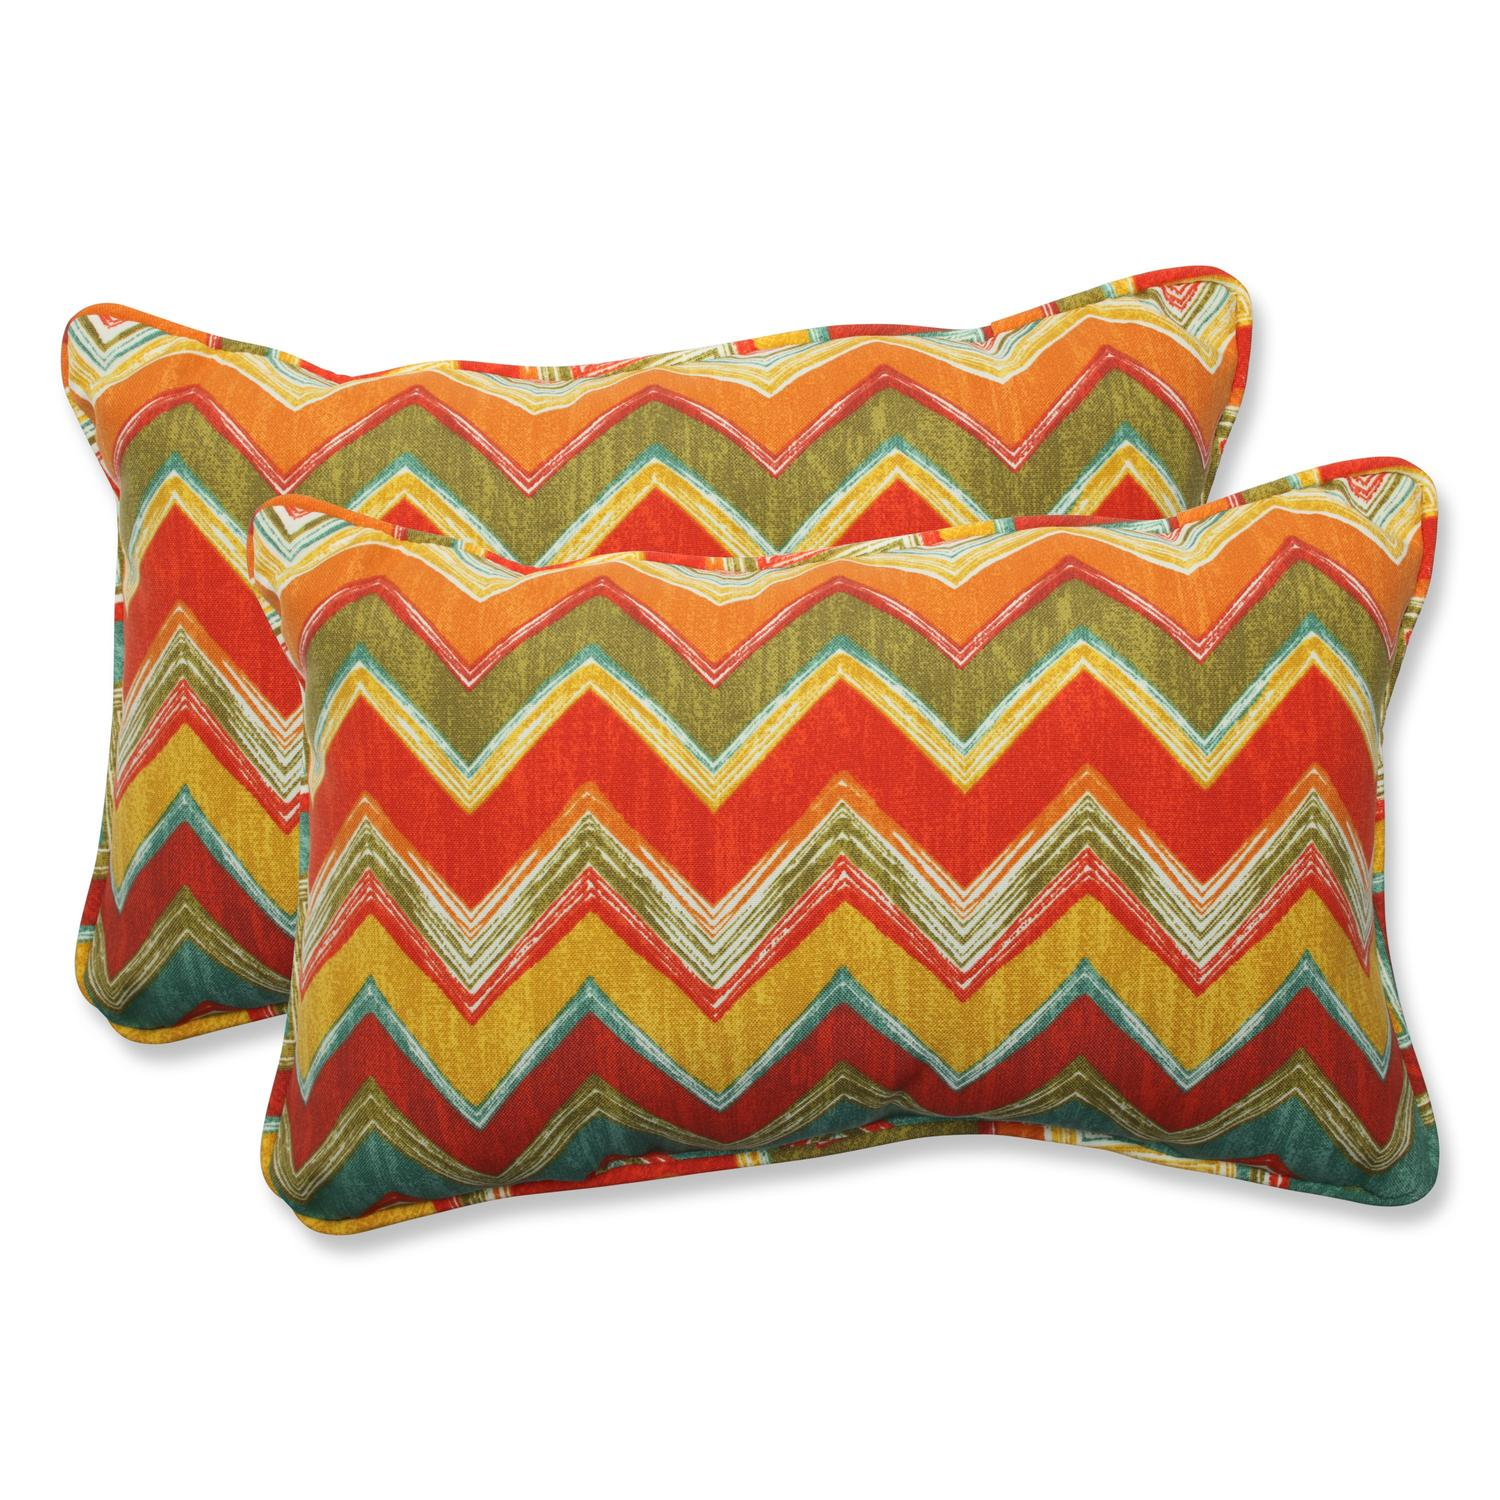 Set of 2 Desert Flavor Multi Chevron Rectangular Outdoor Corded Throw Pillows